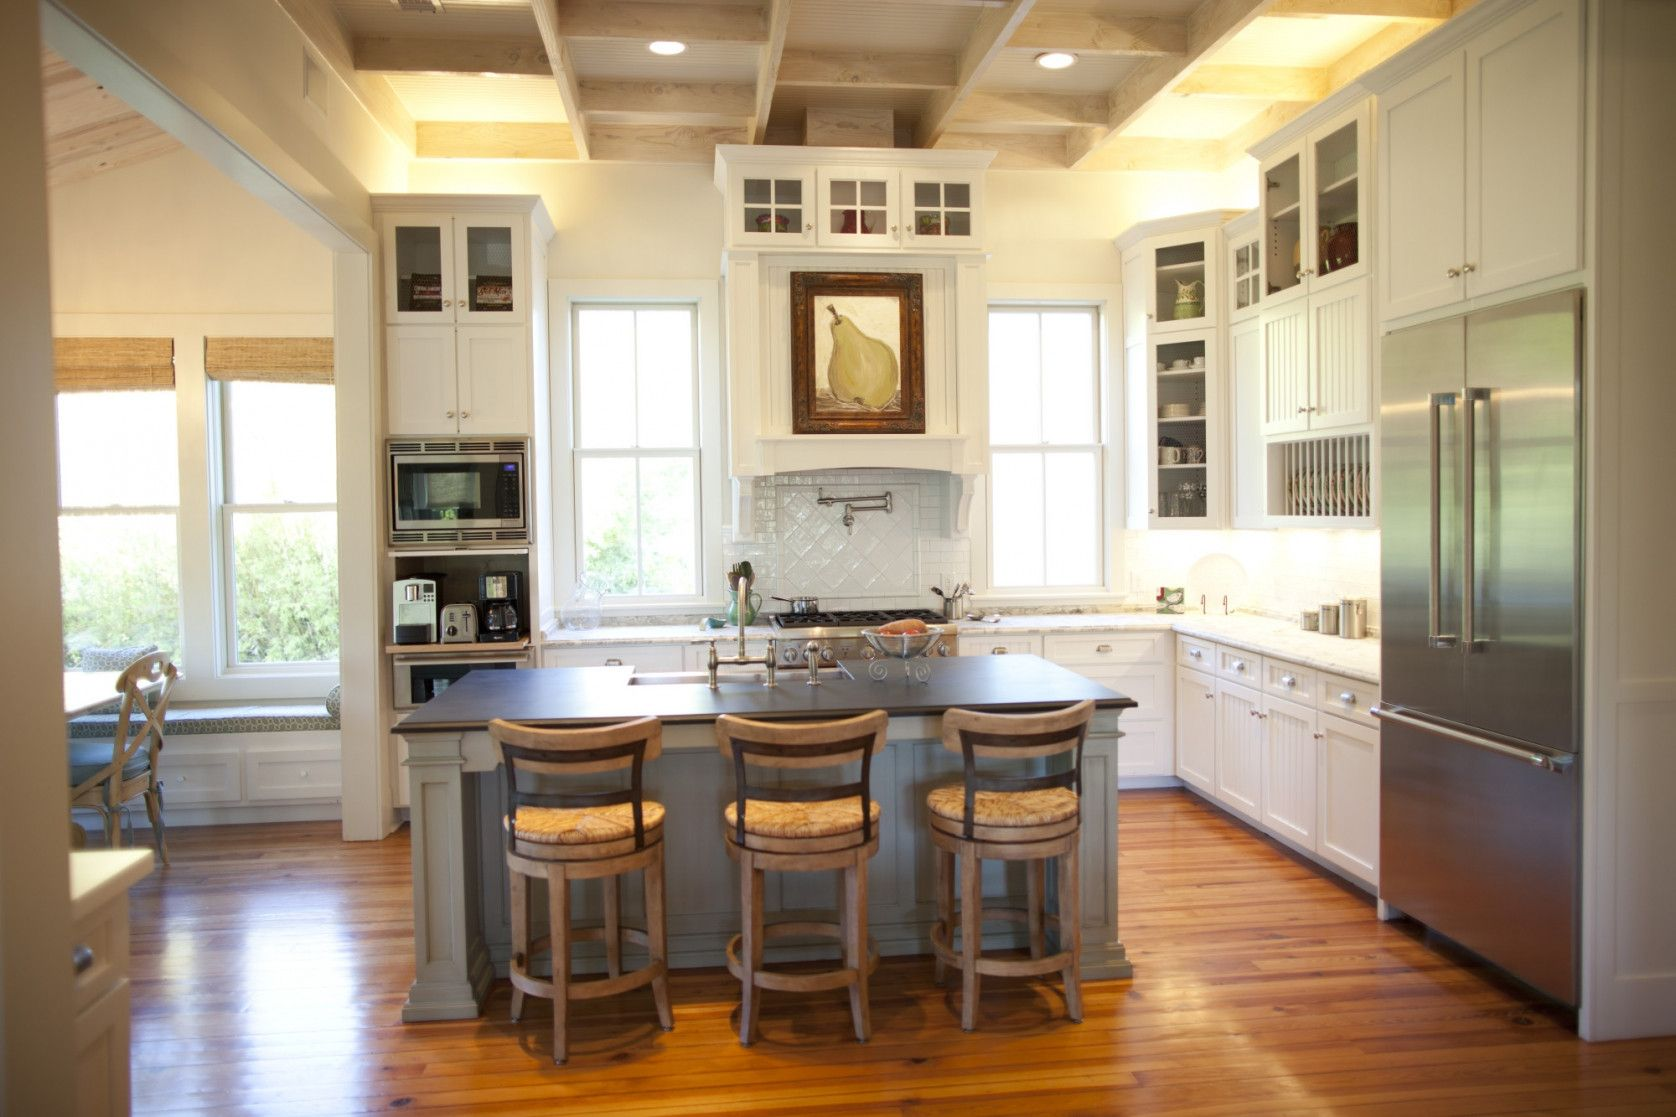 Upscale Kitchen Without Upper Cabinets | Swing Kitchen on kitchens without wall cabinets, kitchens with no upper cabinets, kitchens without top cabinets, white kitchen cabinets design ideas, kitchens with no windows designs,